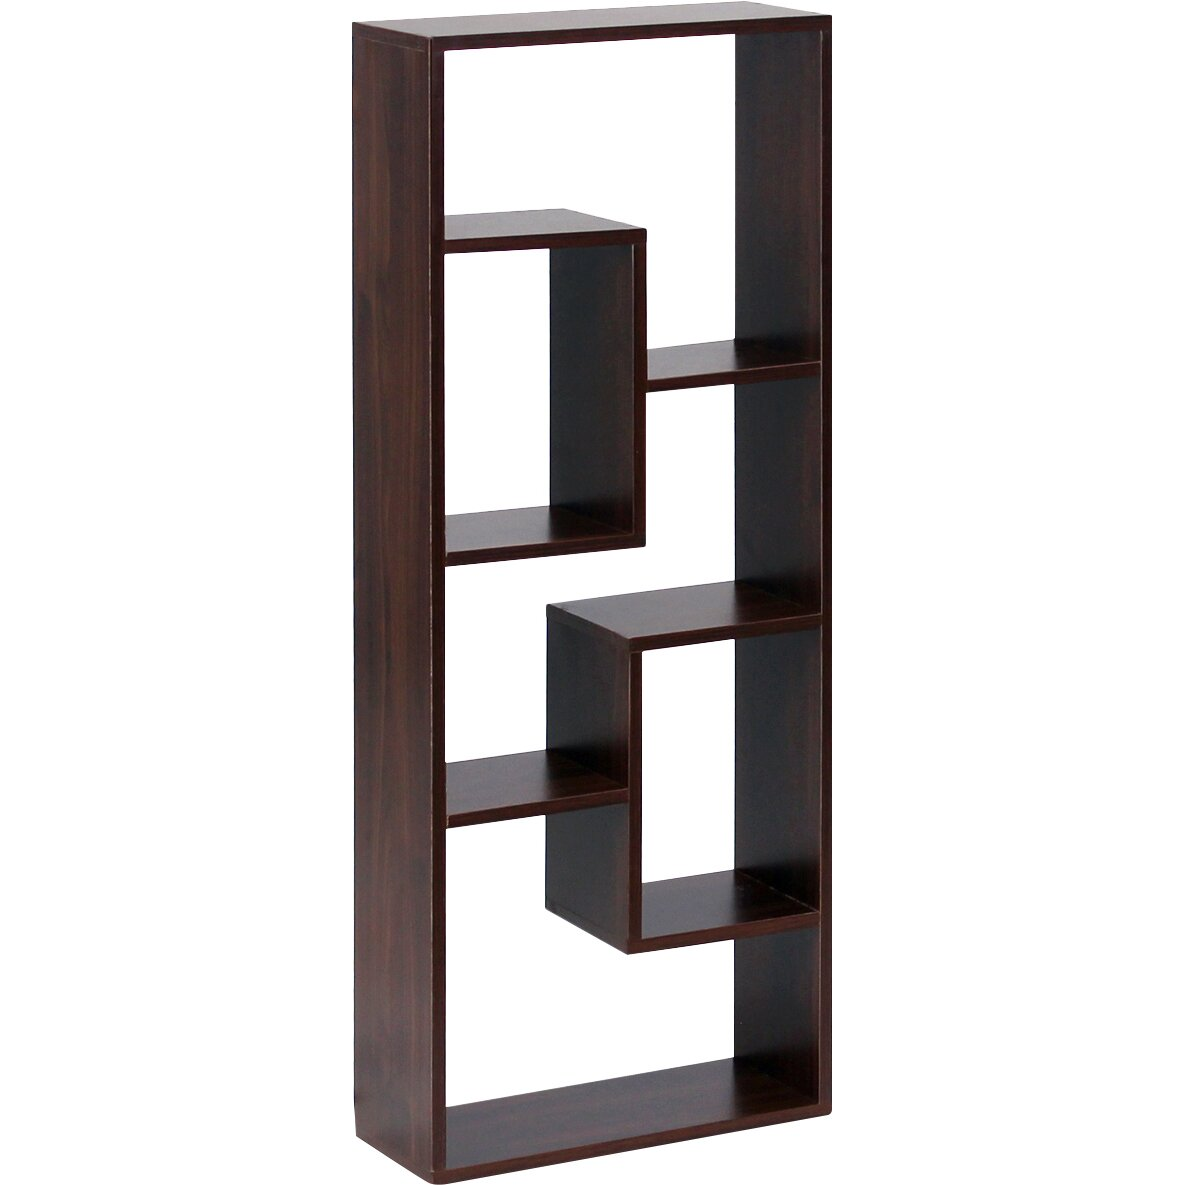 Furinno boyate 4 cube wall mounted bookcase Wall mounted bookcase shelves